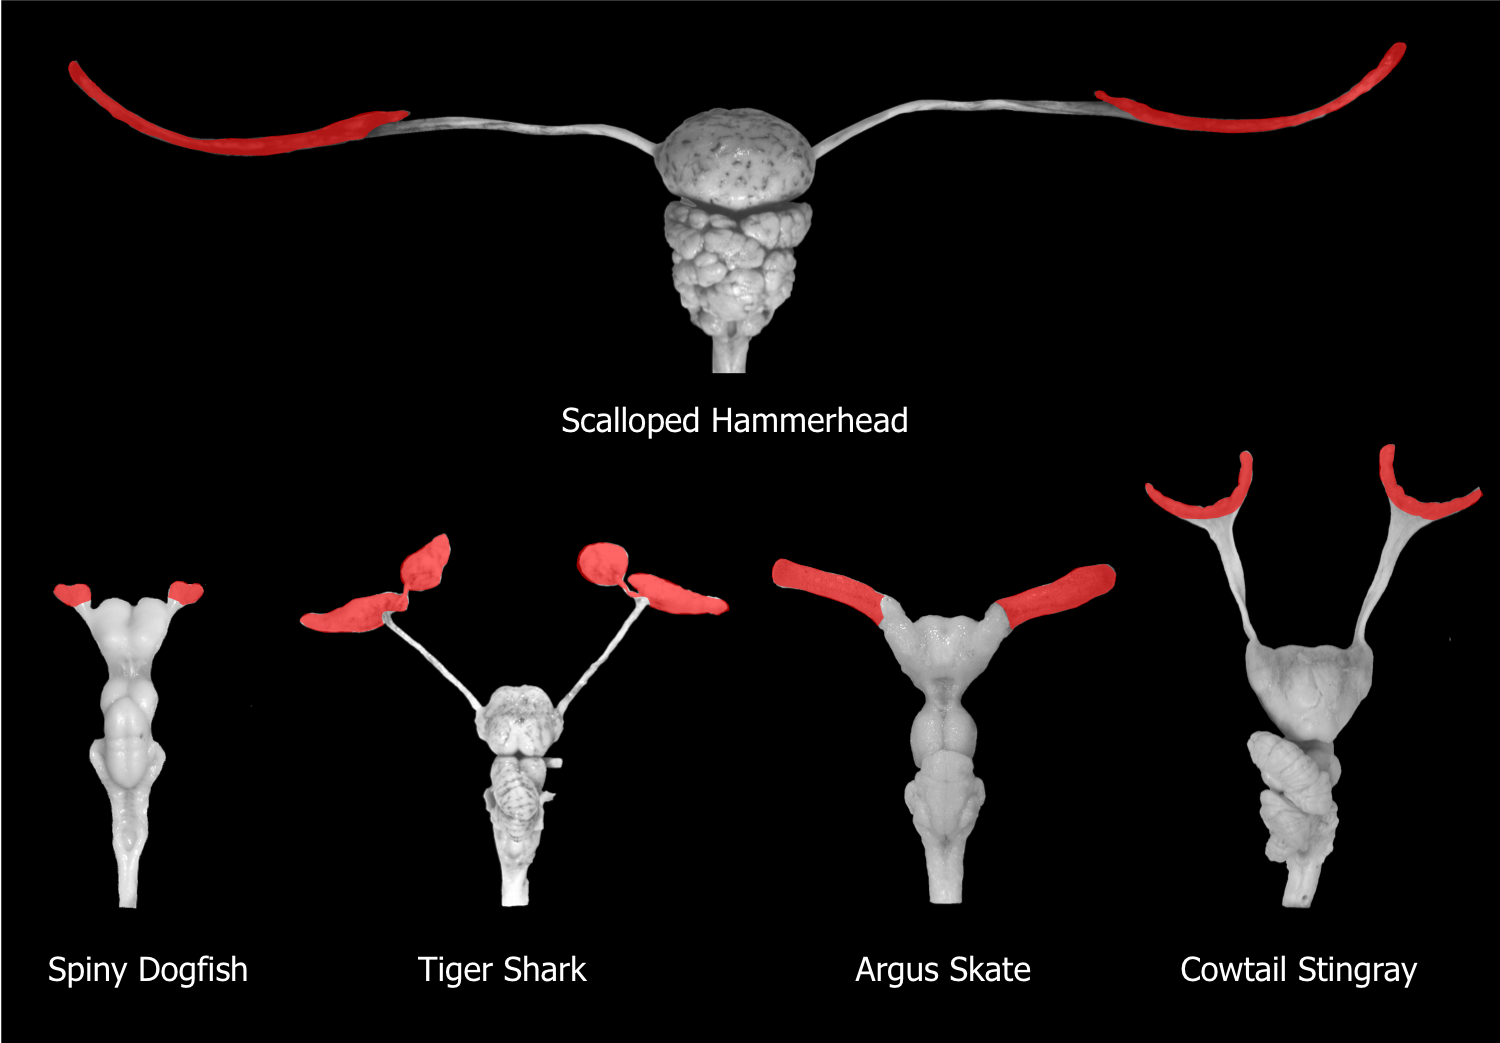 "Adapted from: 7.	Yopak KE, Lisney TJ, Collin SP. 2015. Not all sharks are ""swimming noses"": Variation in olfactory bulb size in cartilaginous fishes. Brain Structure and Function. 220: 1127-1143"